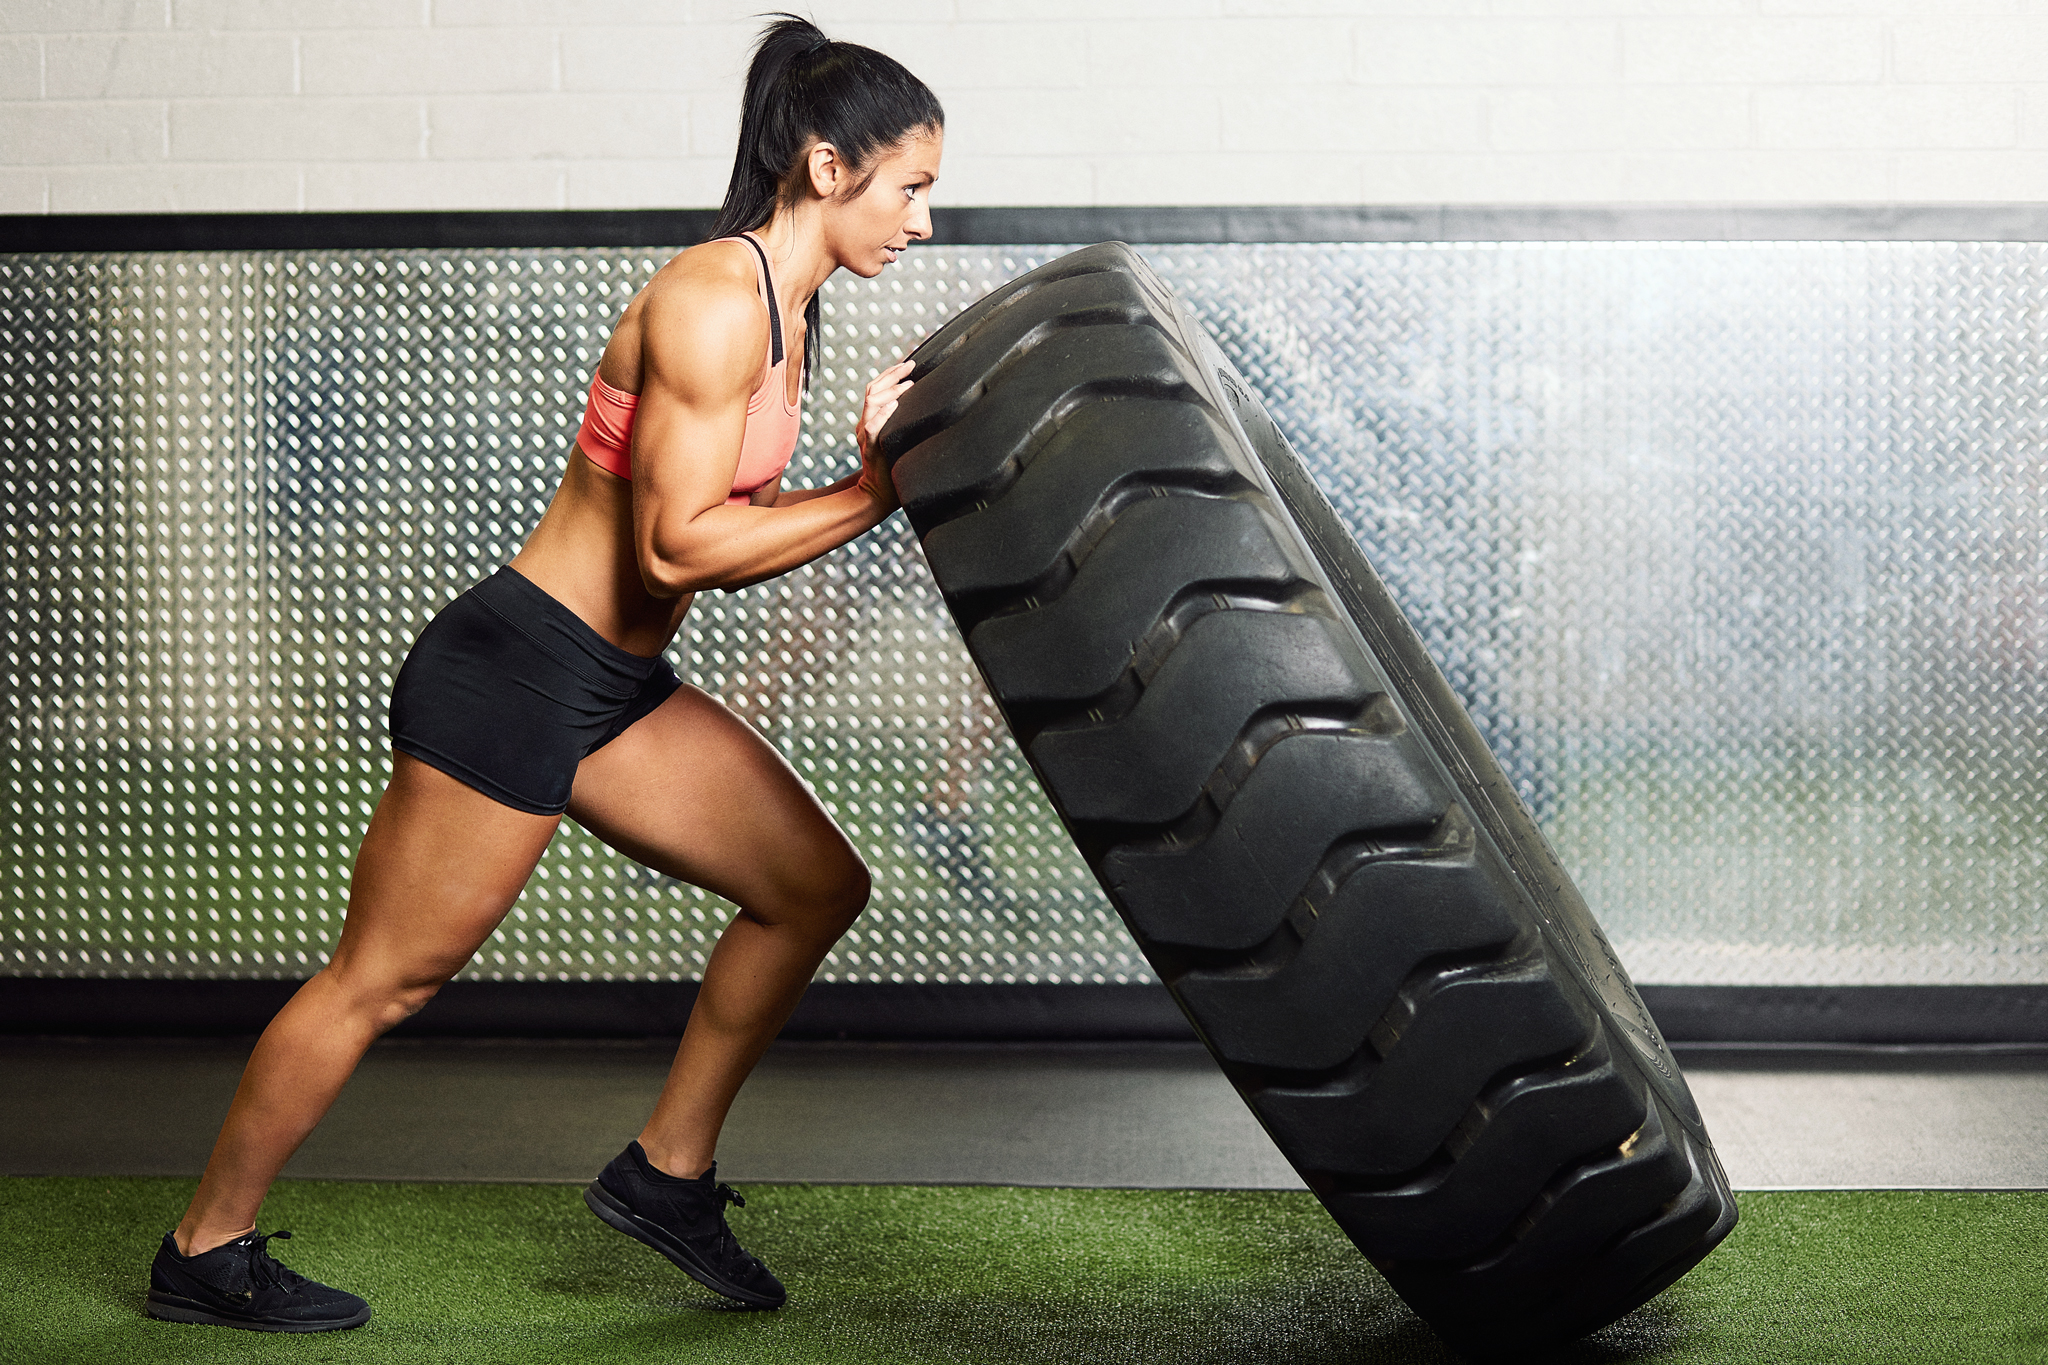 Fitness Competitor Photoshoot - tire flips - April Bleicher